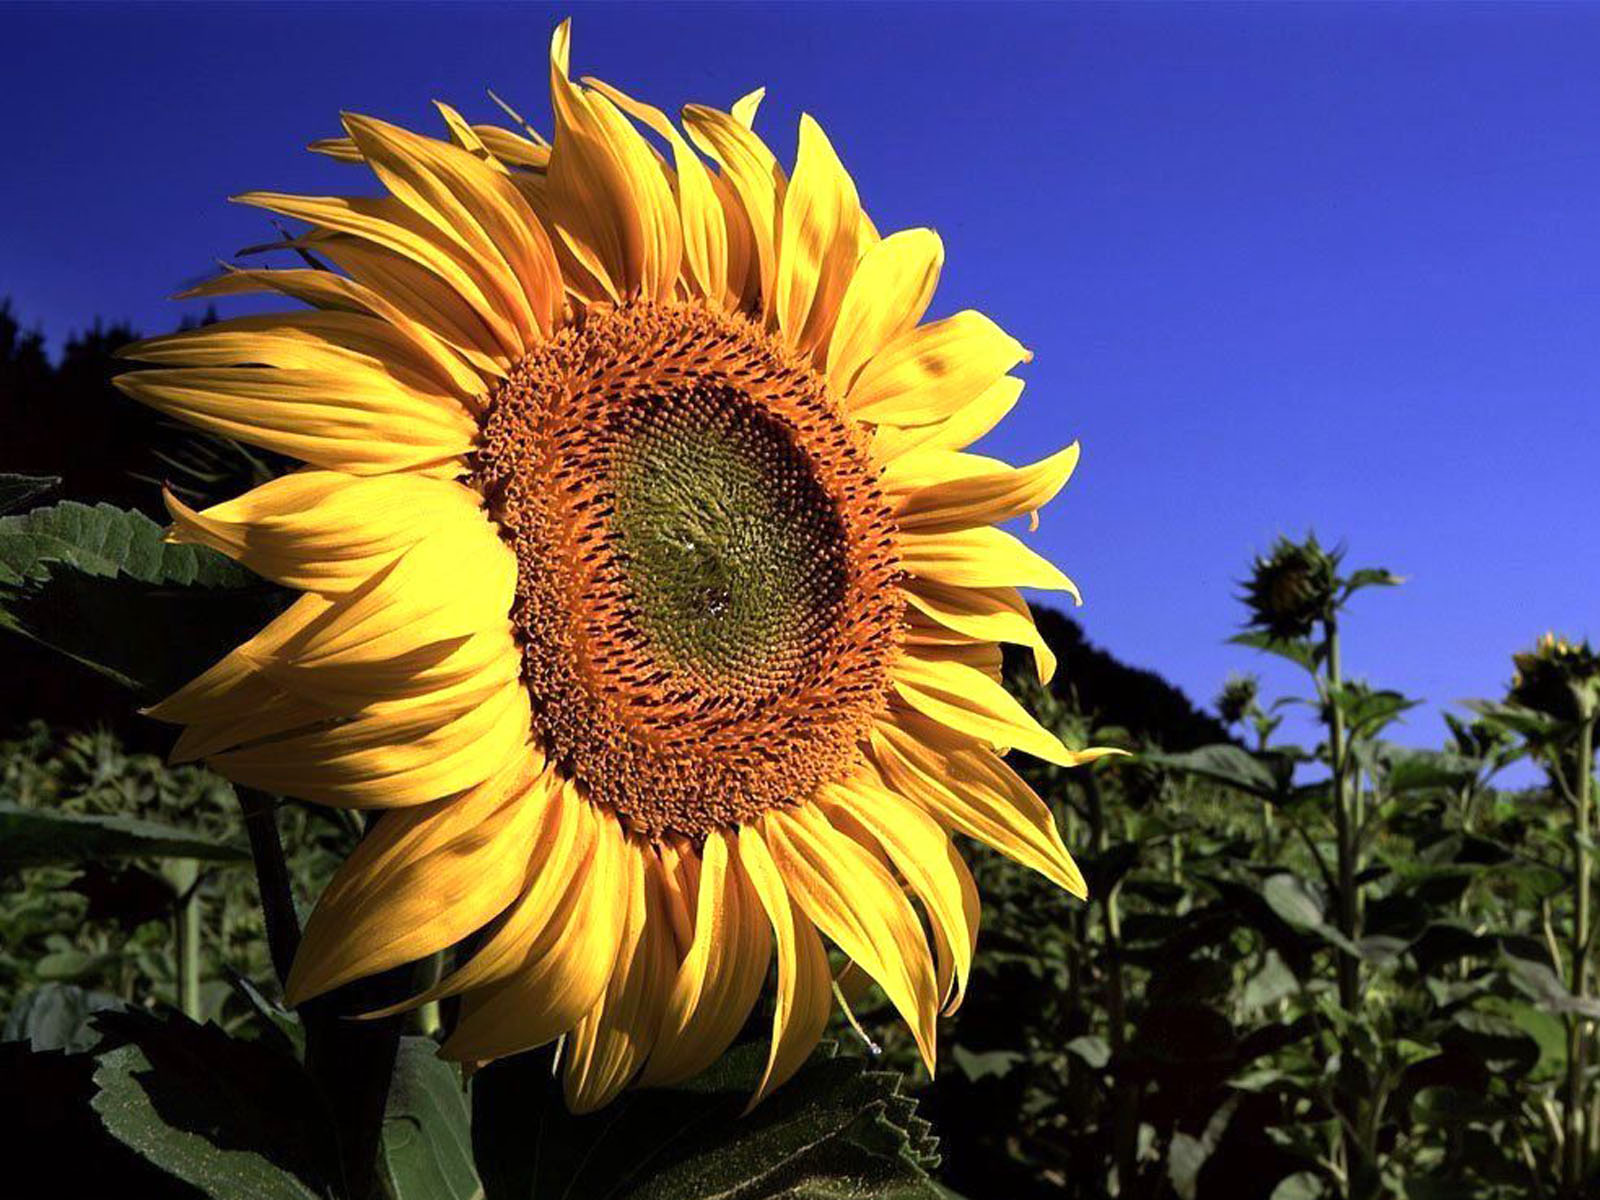 Free Car Wallpapers For Windows 7 Wallpapers Sunflower Close Up Wallpapers